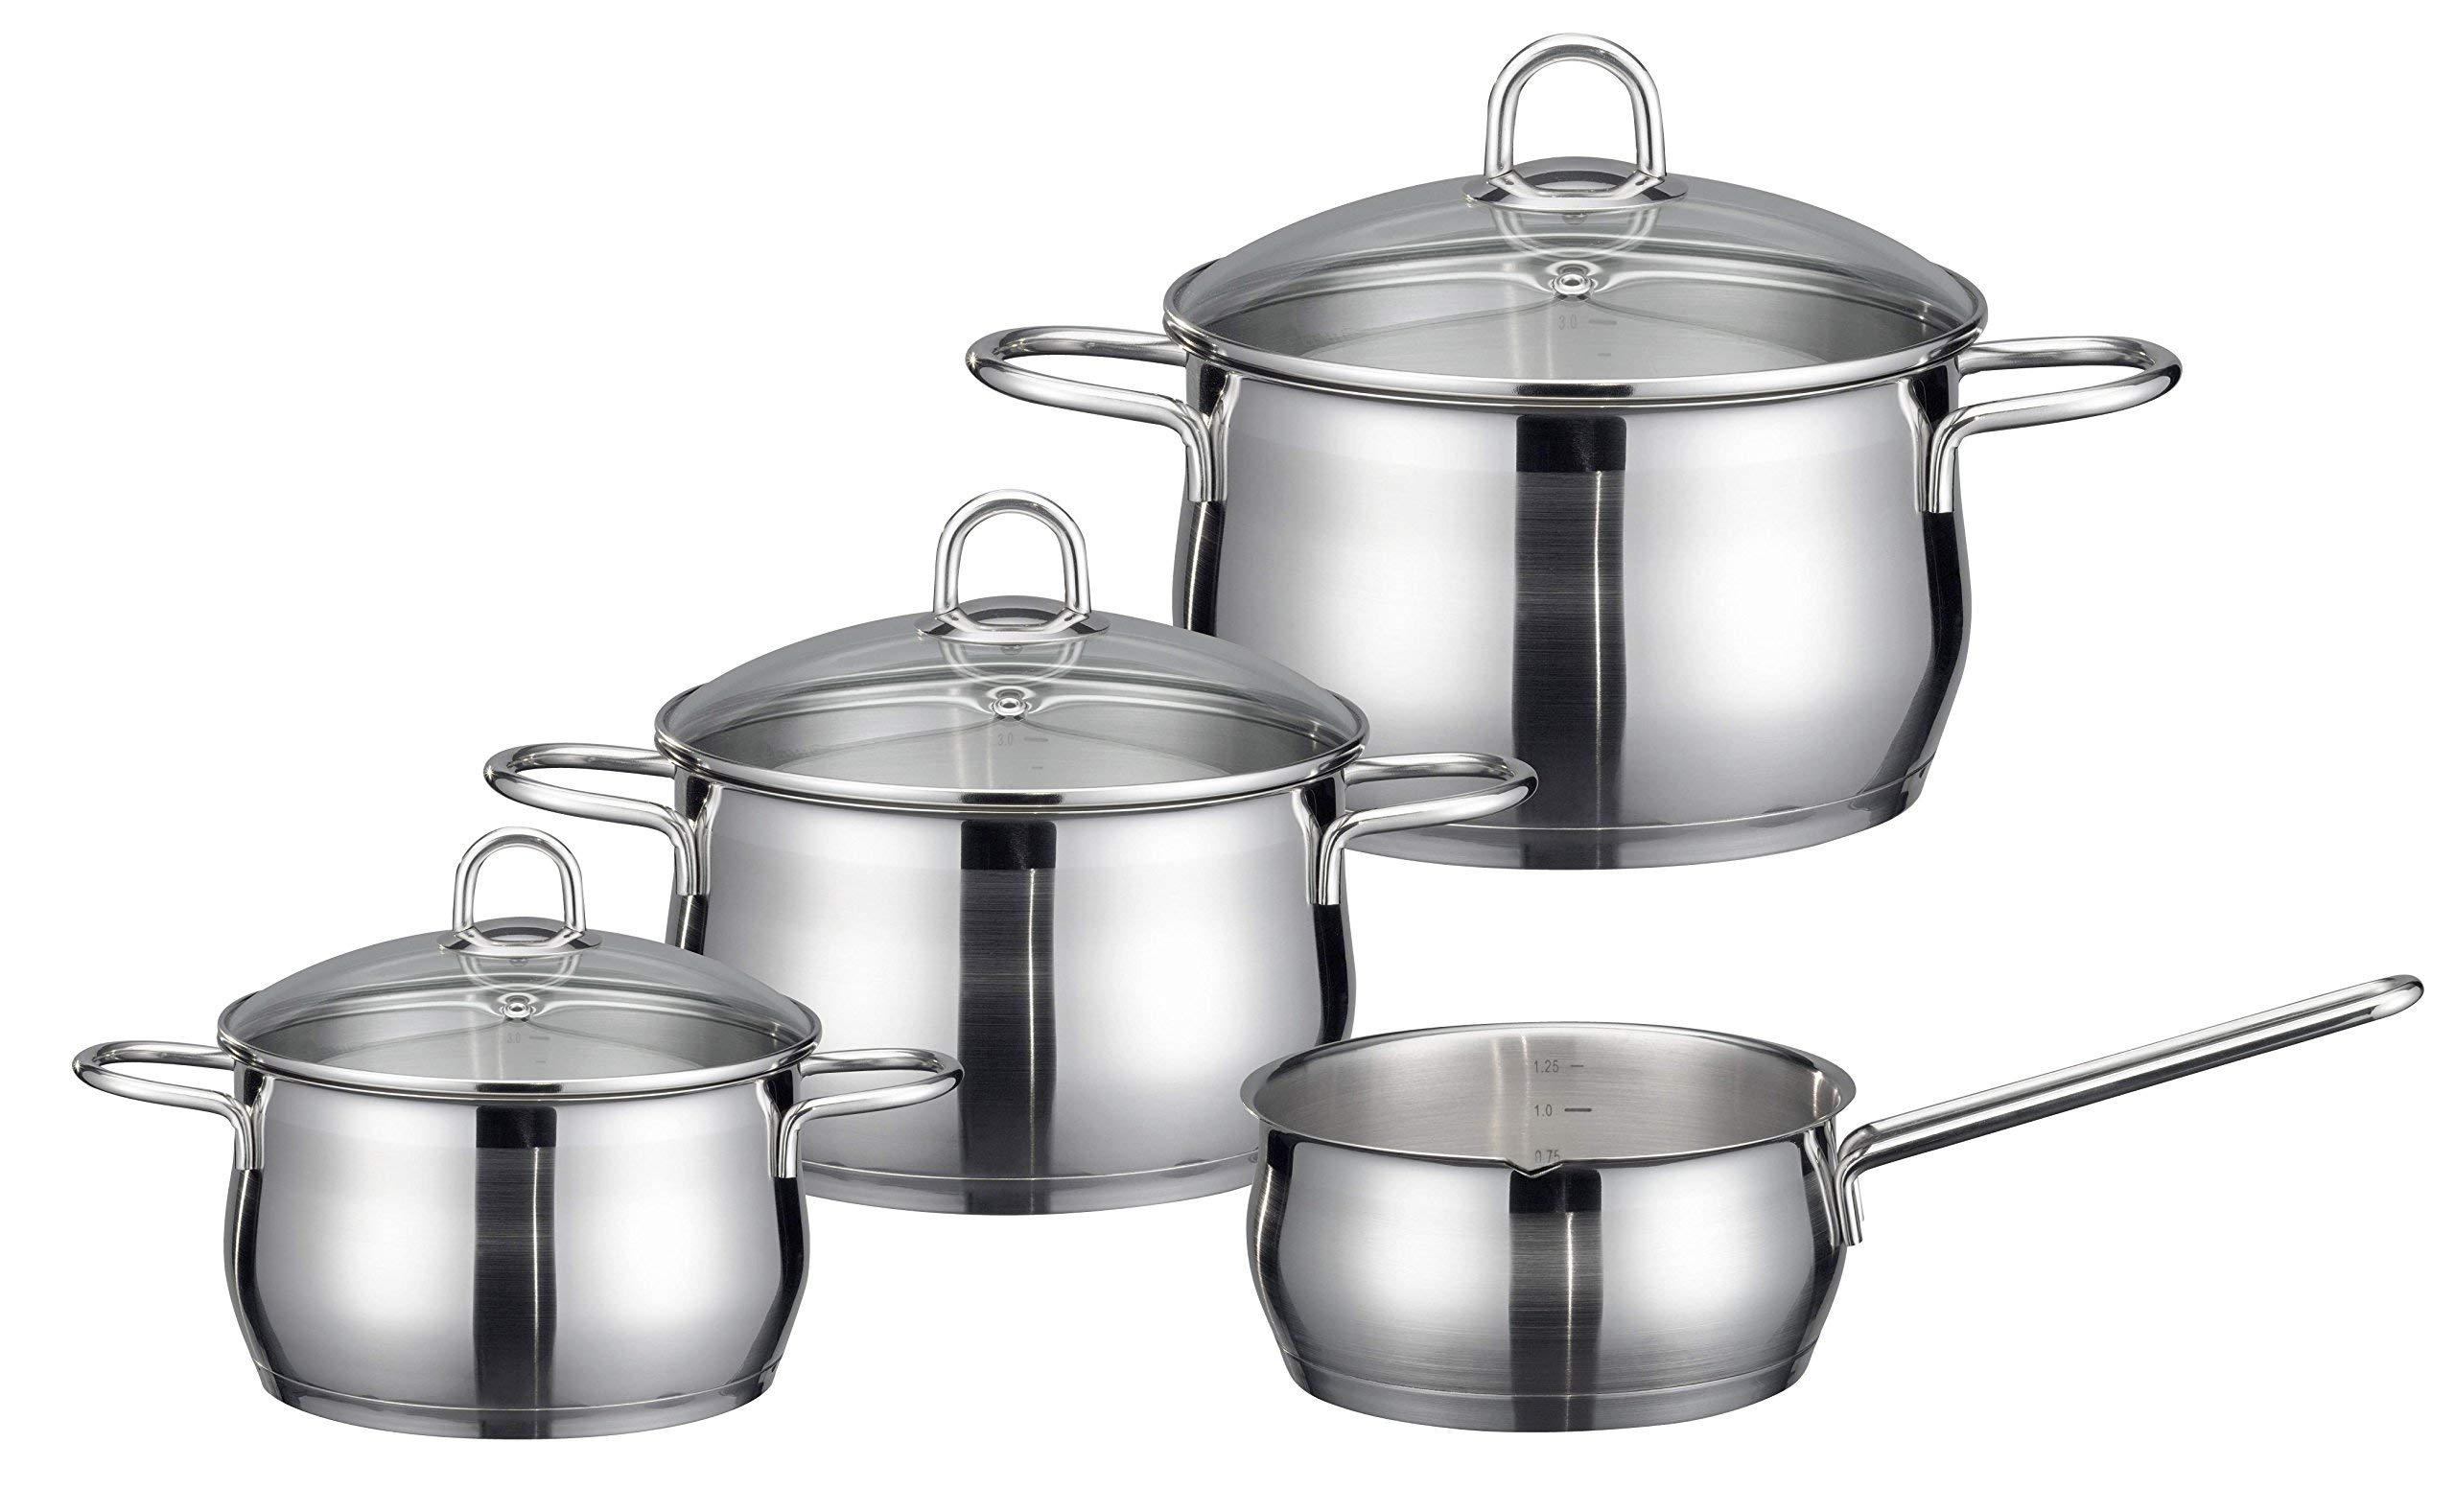 ELO Cookware 90604 Platin Stainless Steel Kitchen Induction Cookware Pots and Pans Set with Shock Resistant Glass Lids, 7-Piece (Renewed)